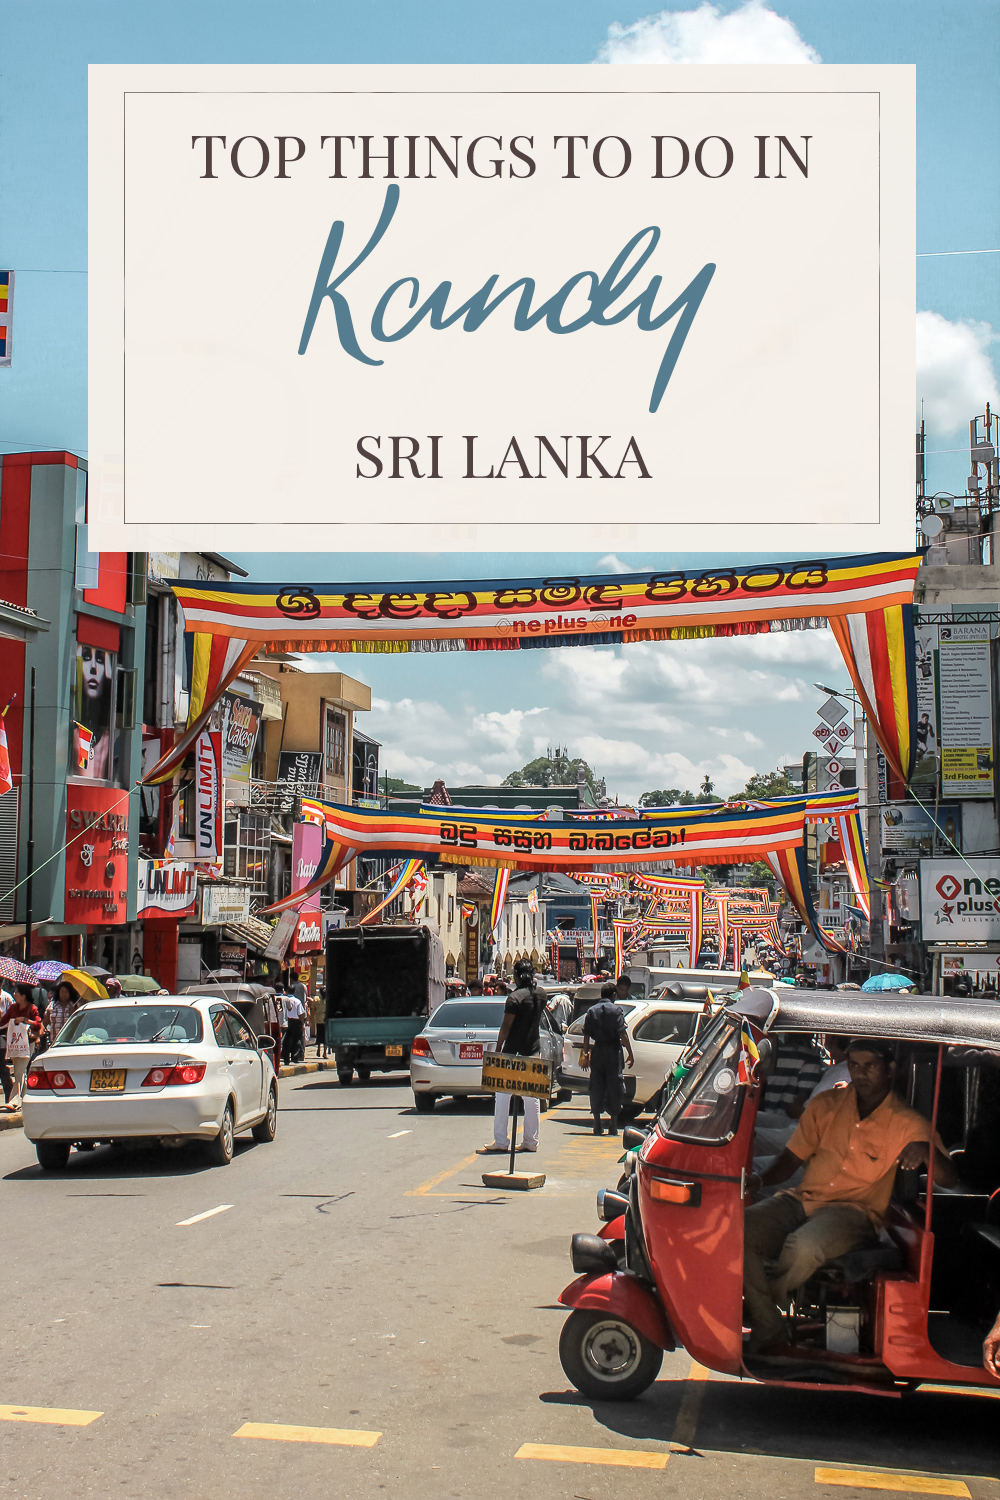 Top Things to do in Kandy Sri Lanka